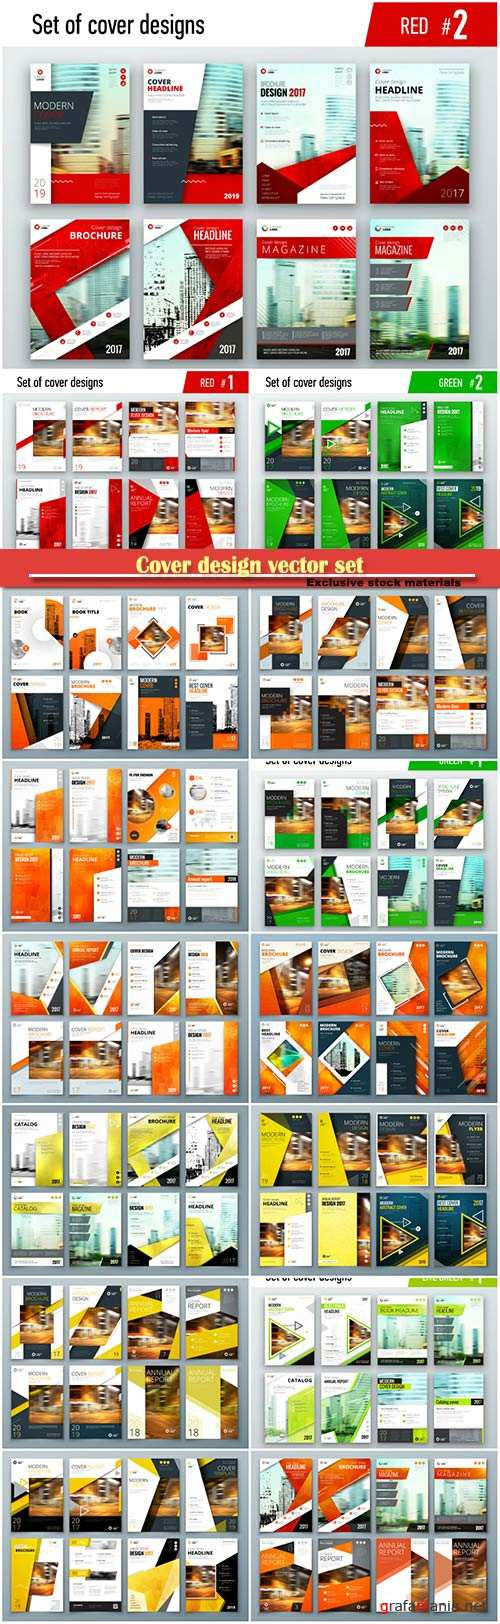 Cover design vector set, corporate business template for brochure, report, catalog, magazine